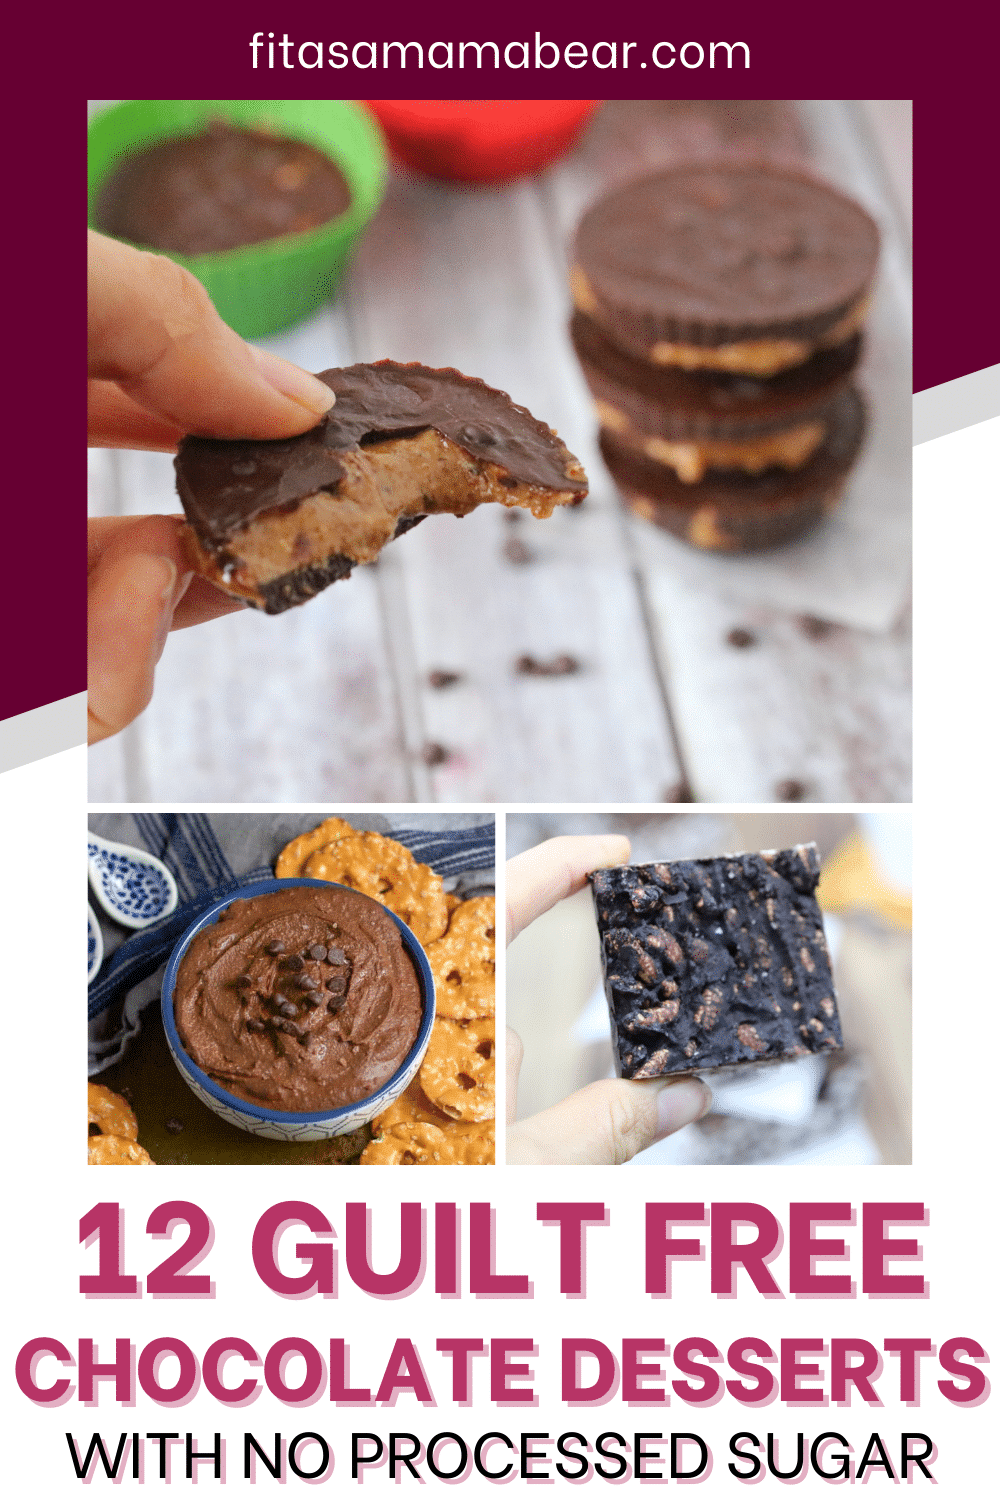 Pinterest image with text: 4 images of healthy chocolate desserts